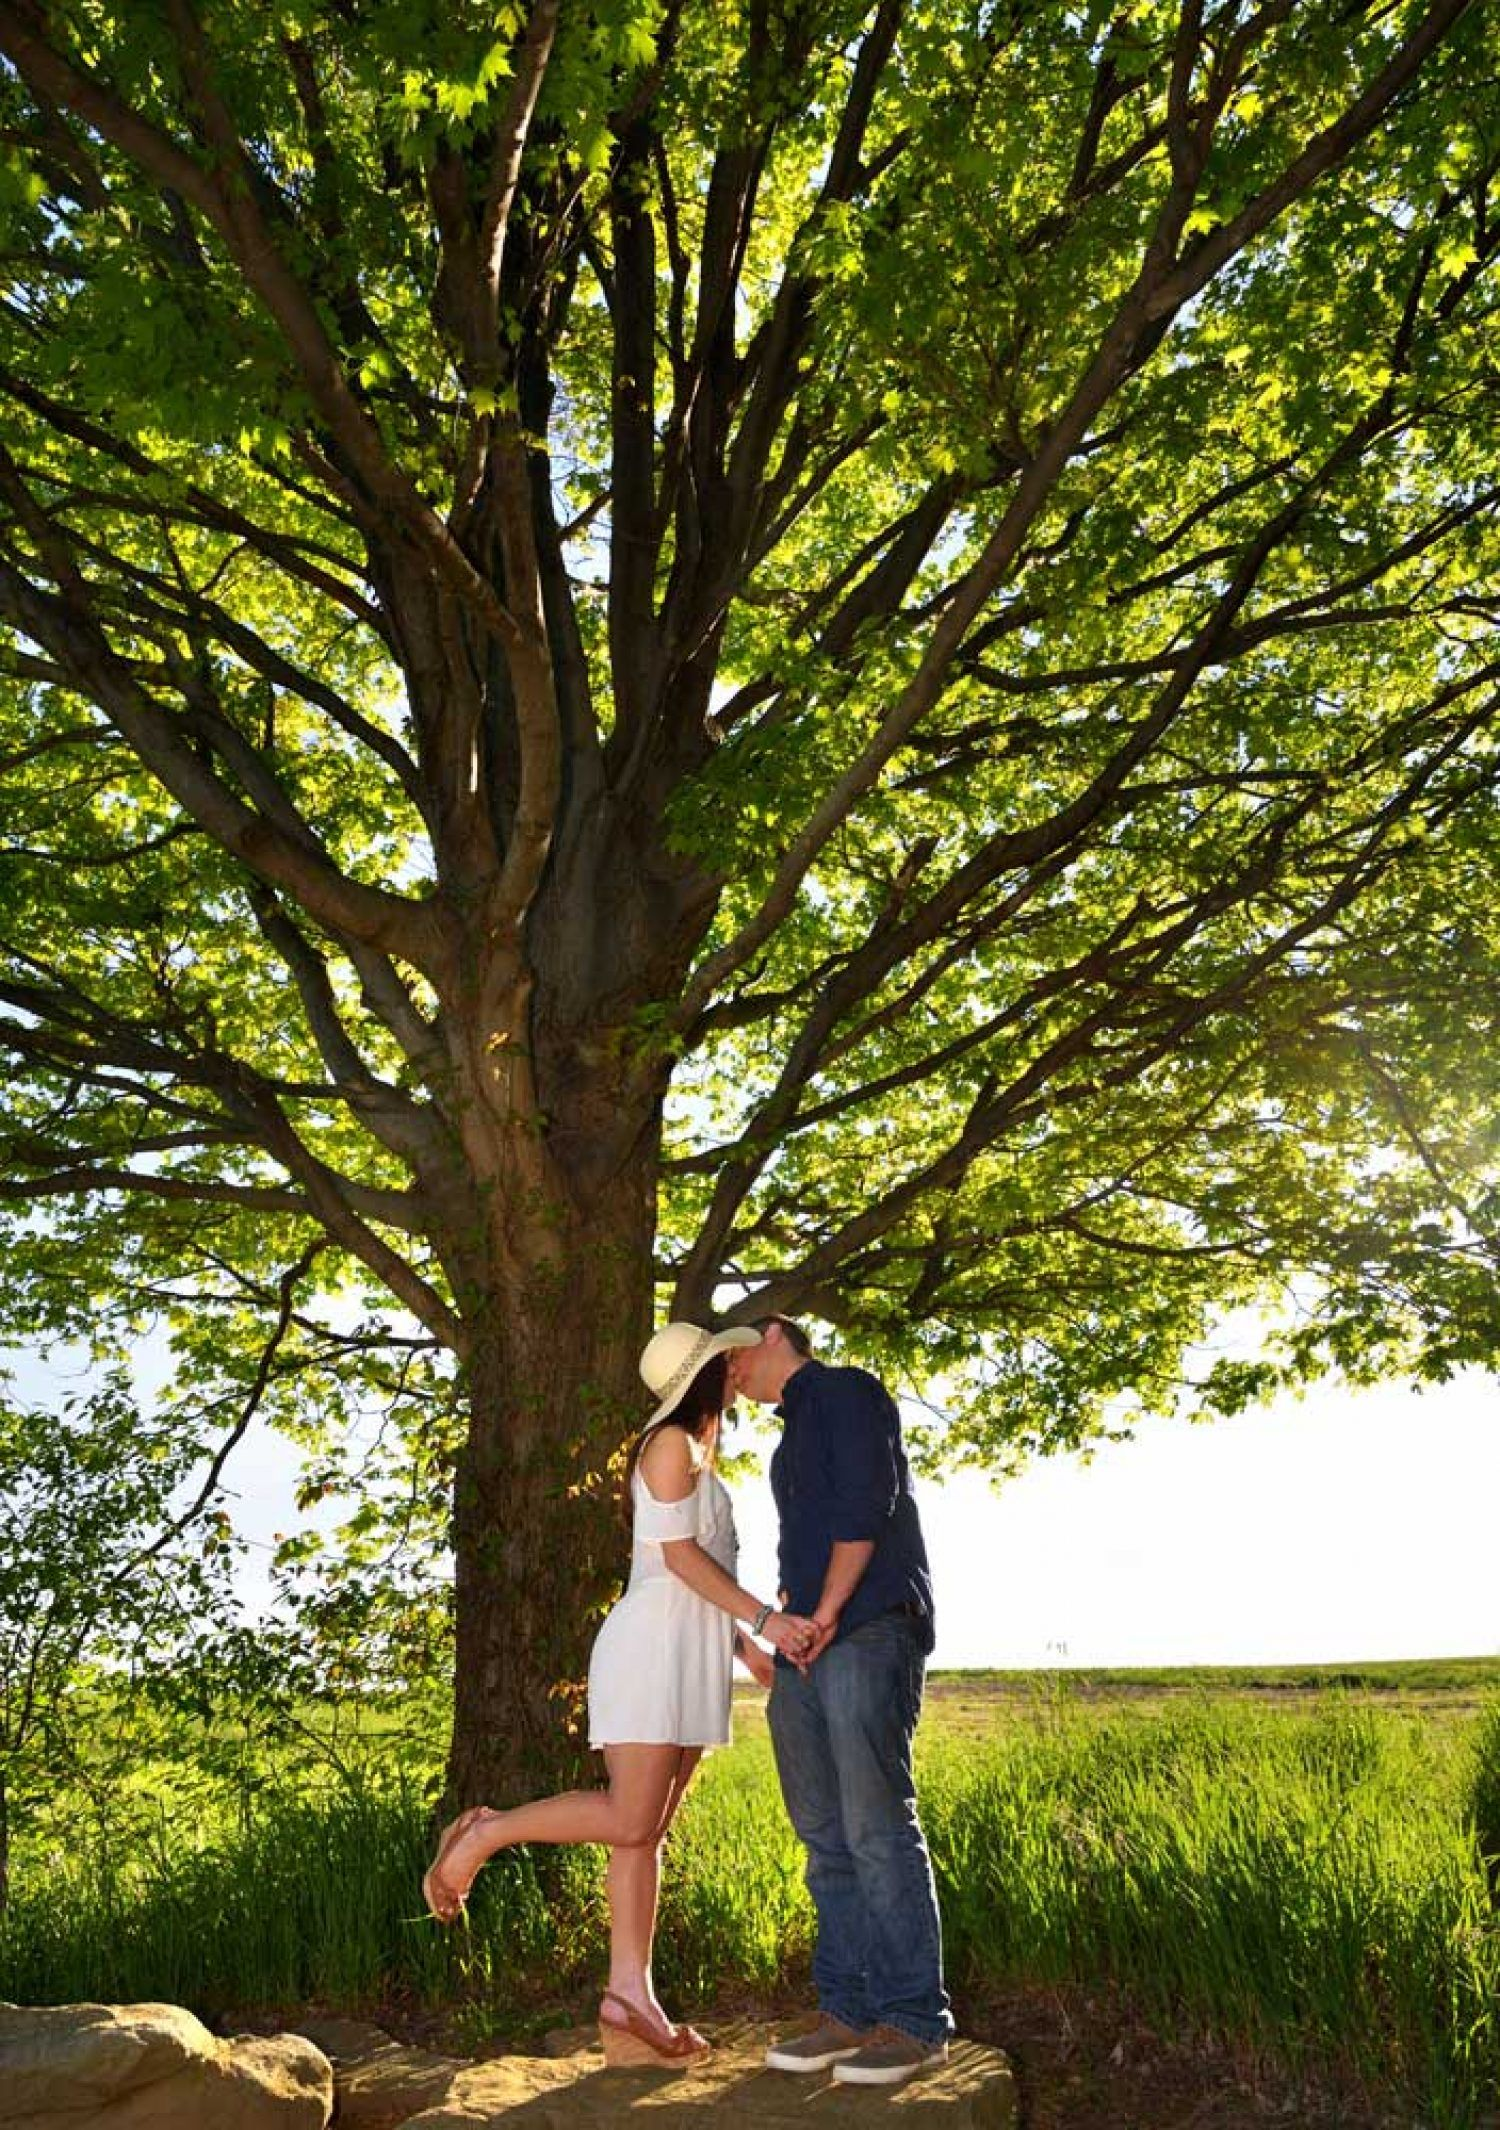 wedding picture locations akron ohio%0A Akron  Ohio Engagement Session   Cheynenne   Isaak  DeLuca Photography and  Video Productions LLC